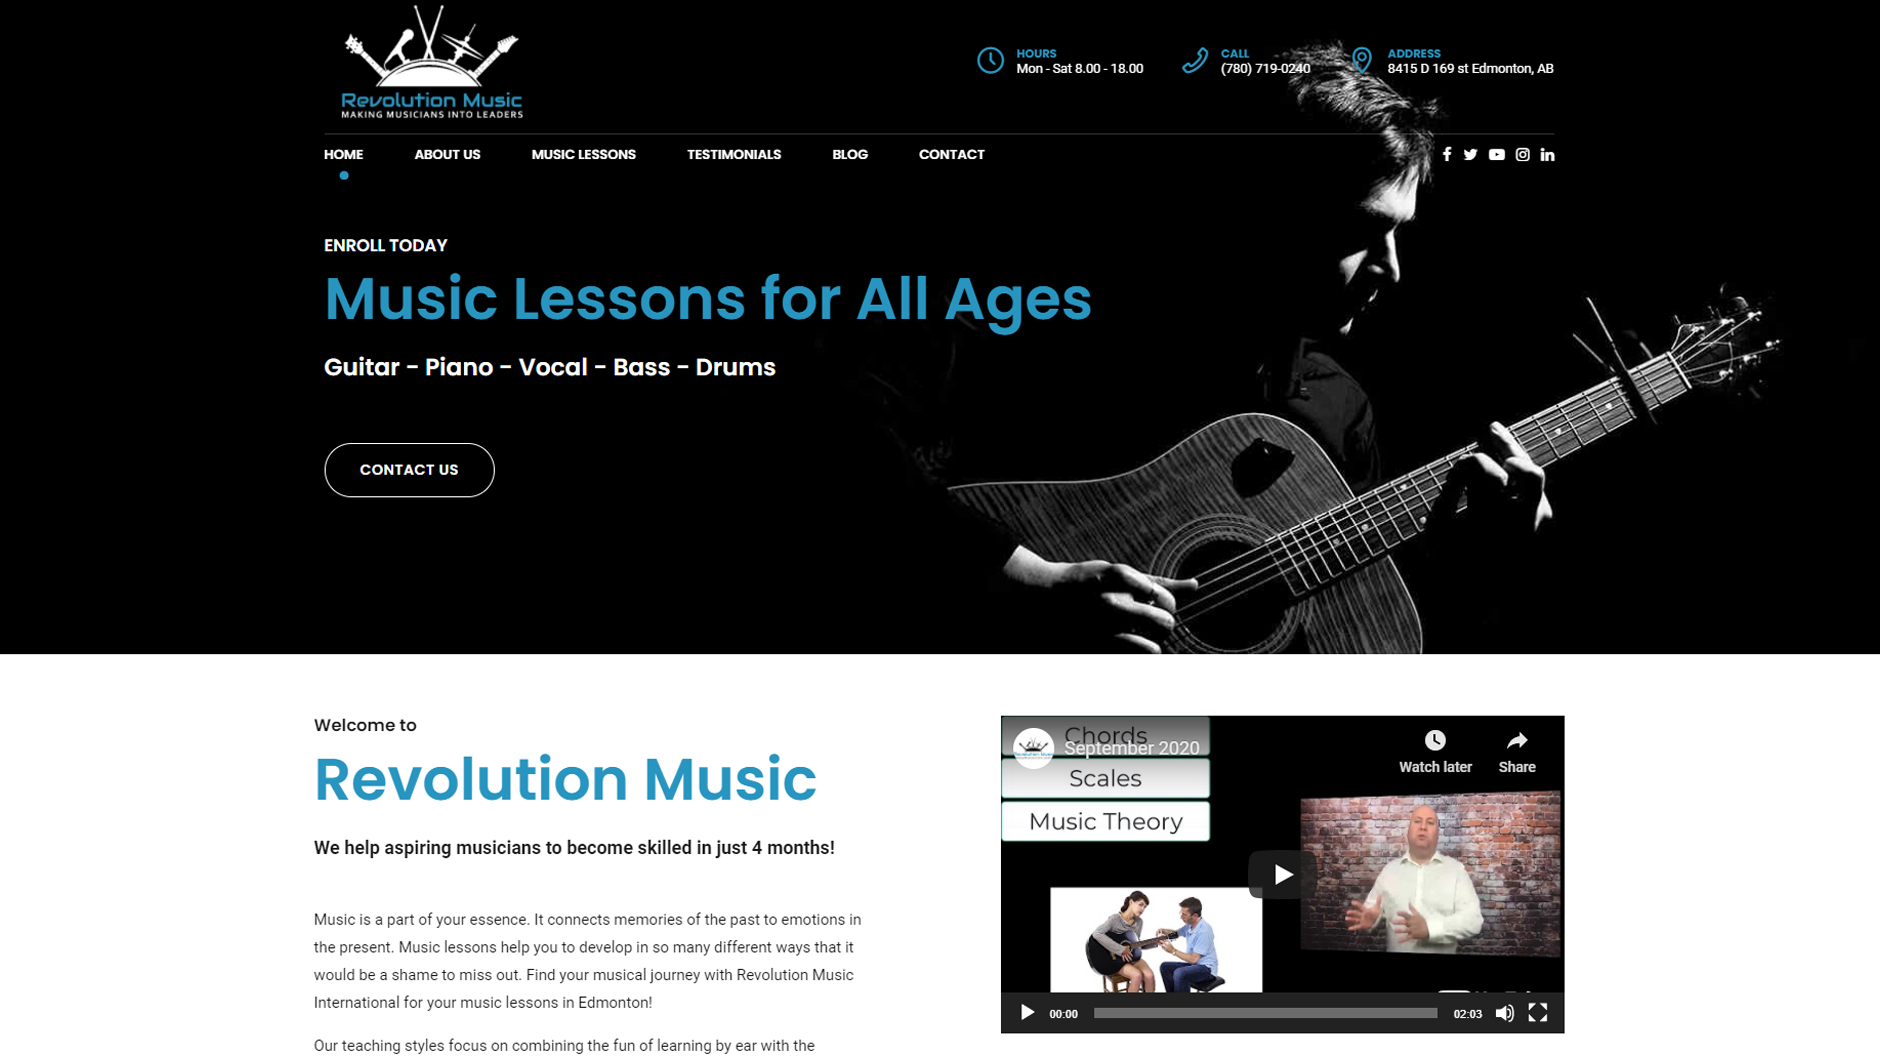 Website Project - Revolution Music